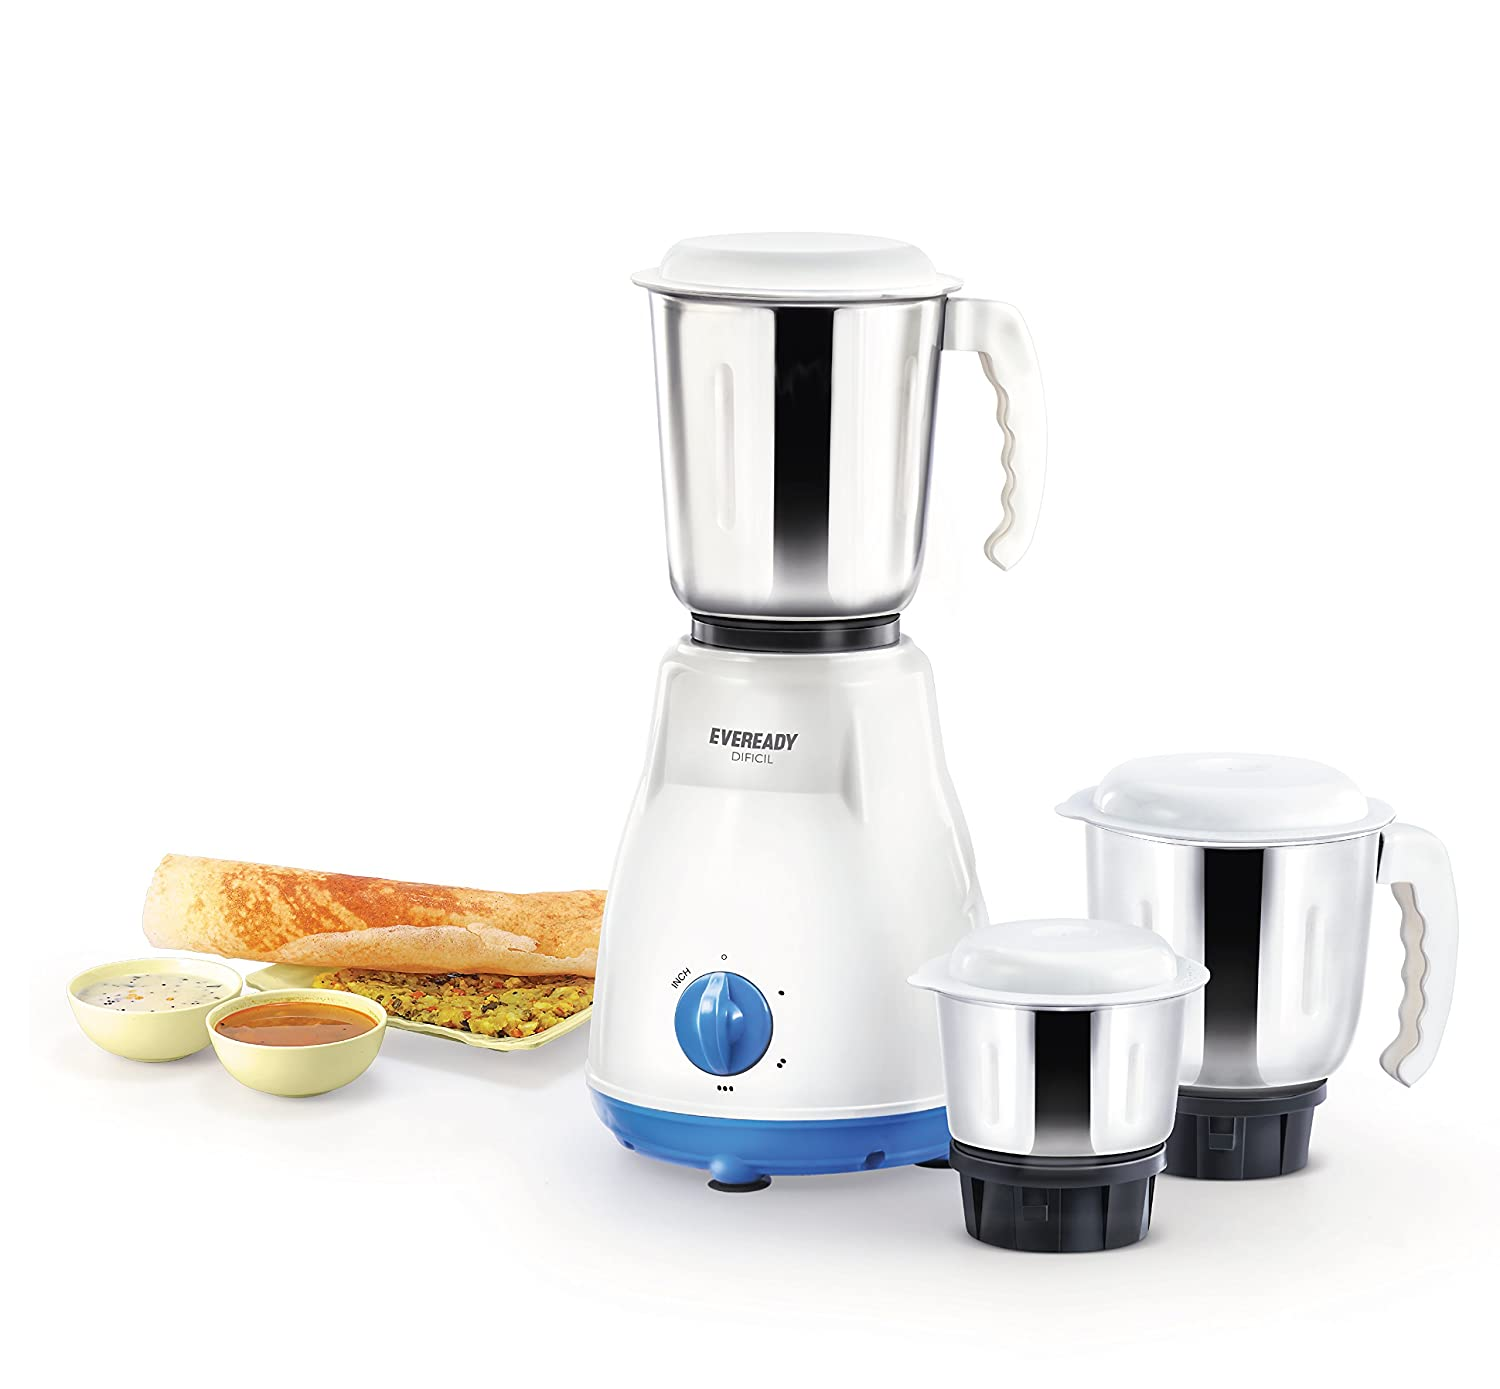 Eveready DIFICIL 500W Mixer Grinder (3 Jar) Image